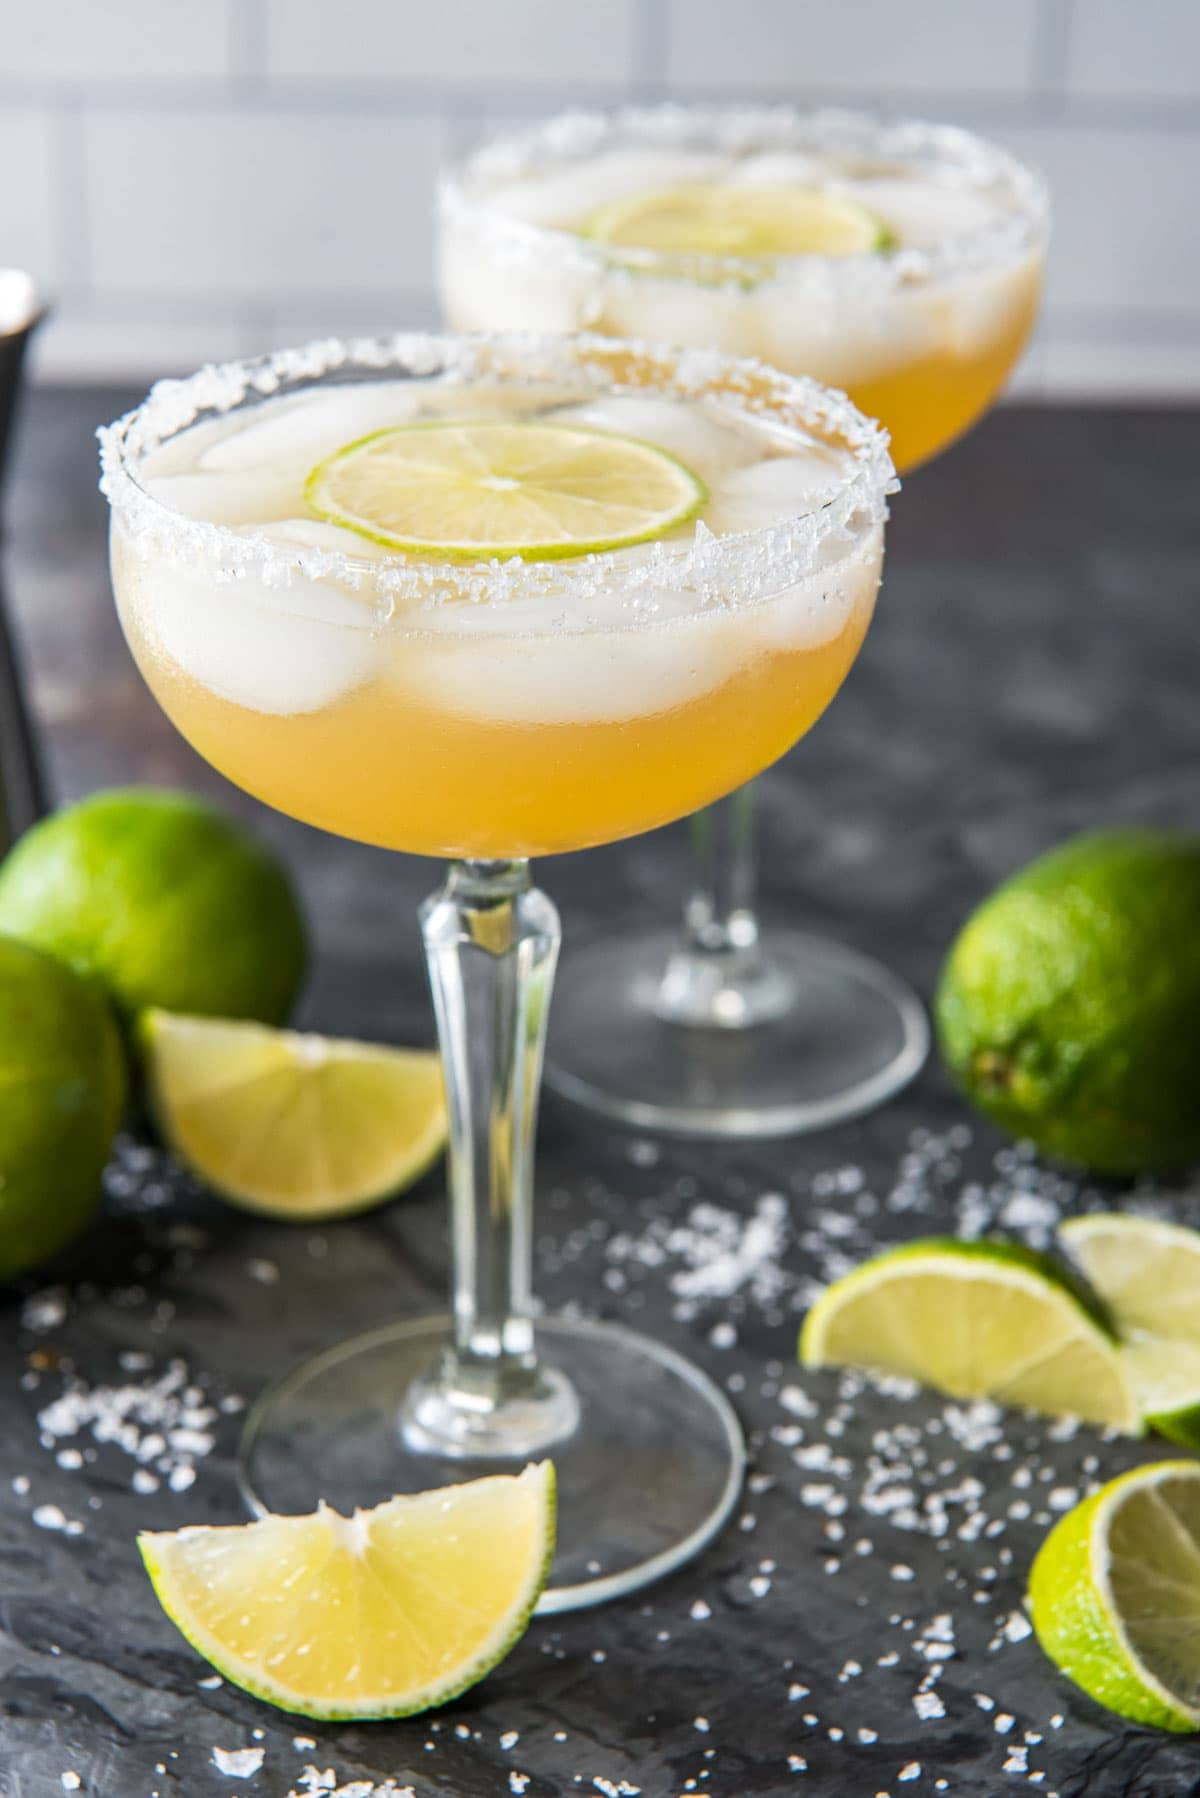 cadillac margarita filled glasses with lime wedges and coarse salt